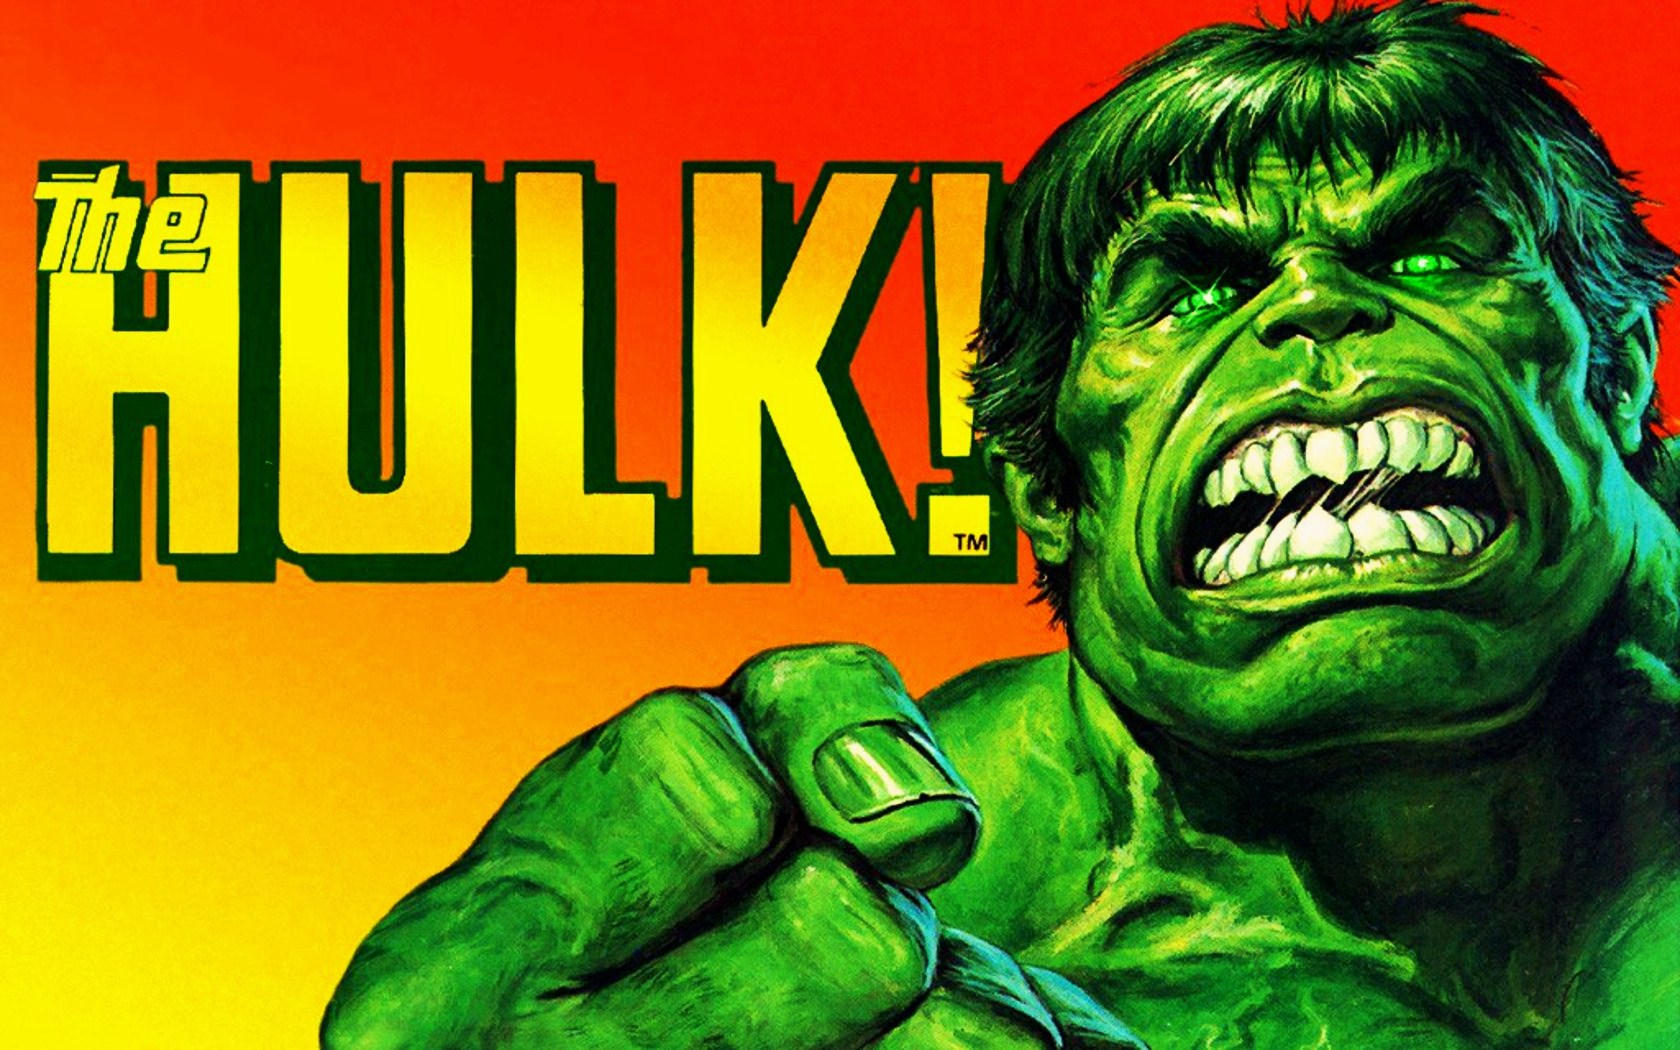 The Hulk Wallpaper The Incredible Hulk Wallpaper 31051334 Fanpop